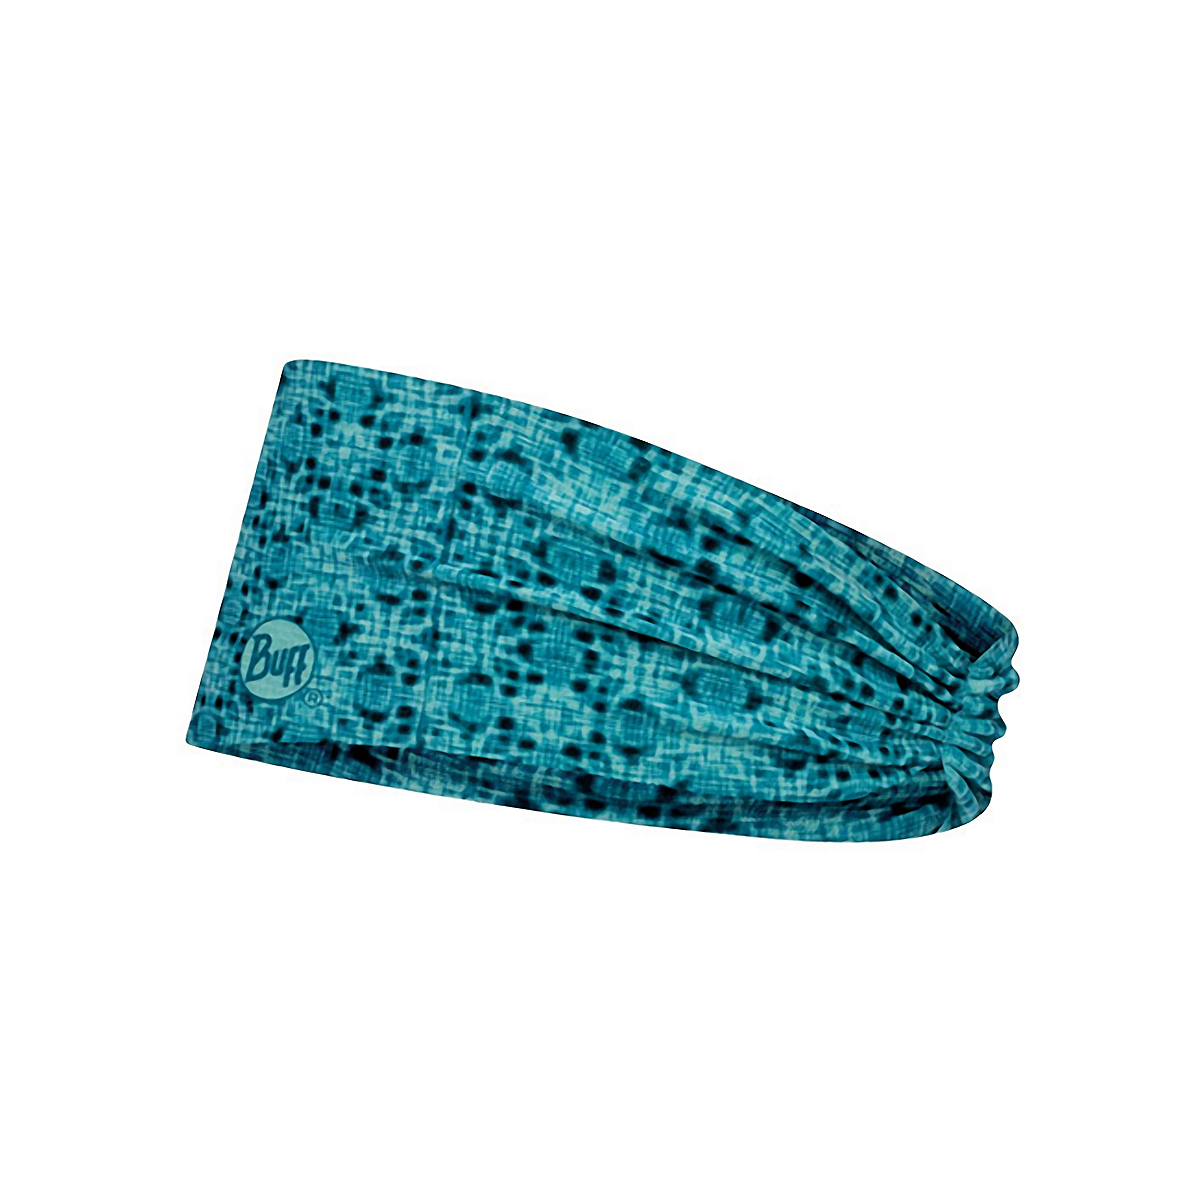 Buff Coolnet UV+ Tapered Headband - Color: Balmor Pool, Balmor Pool, large, image 1